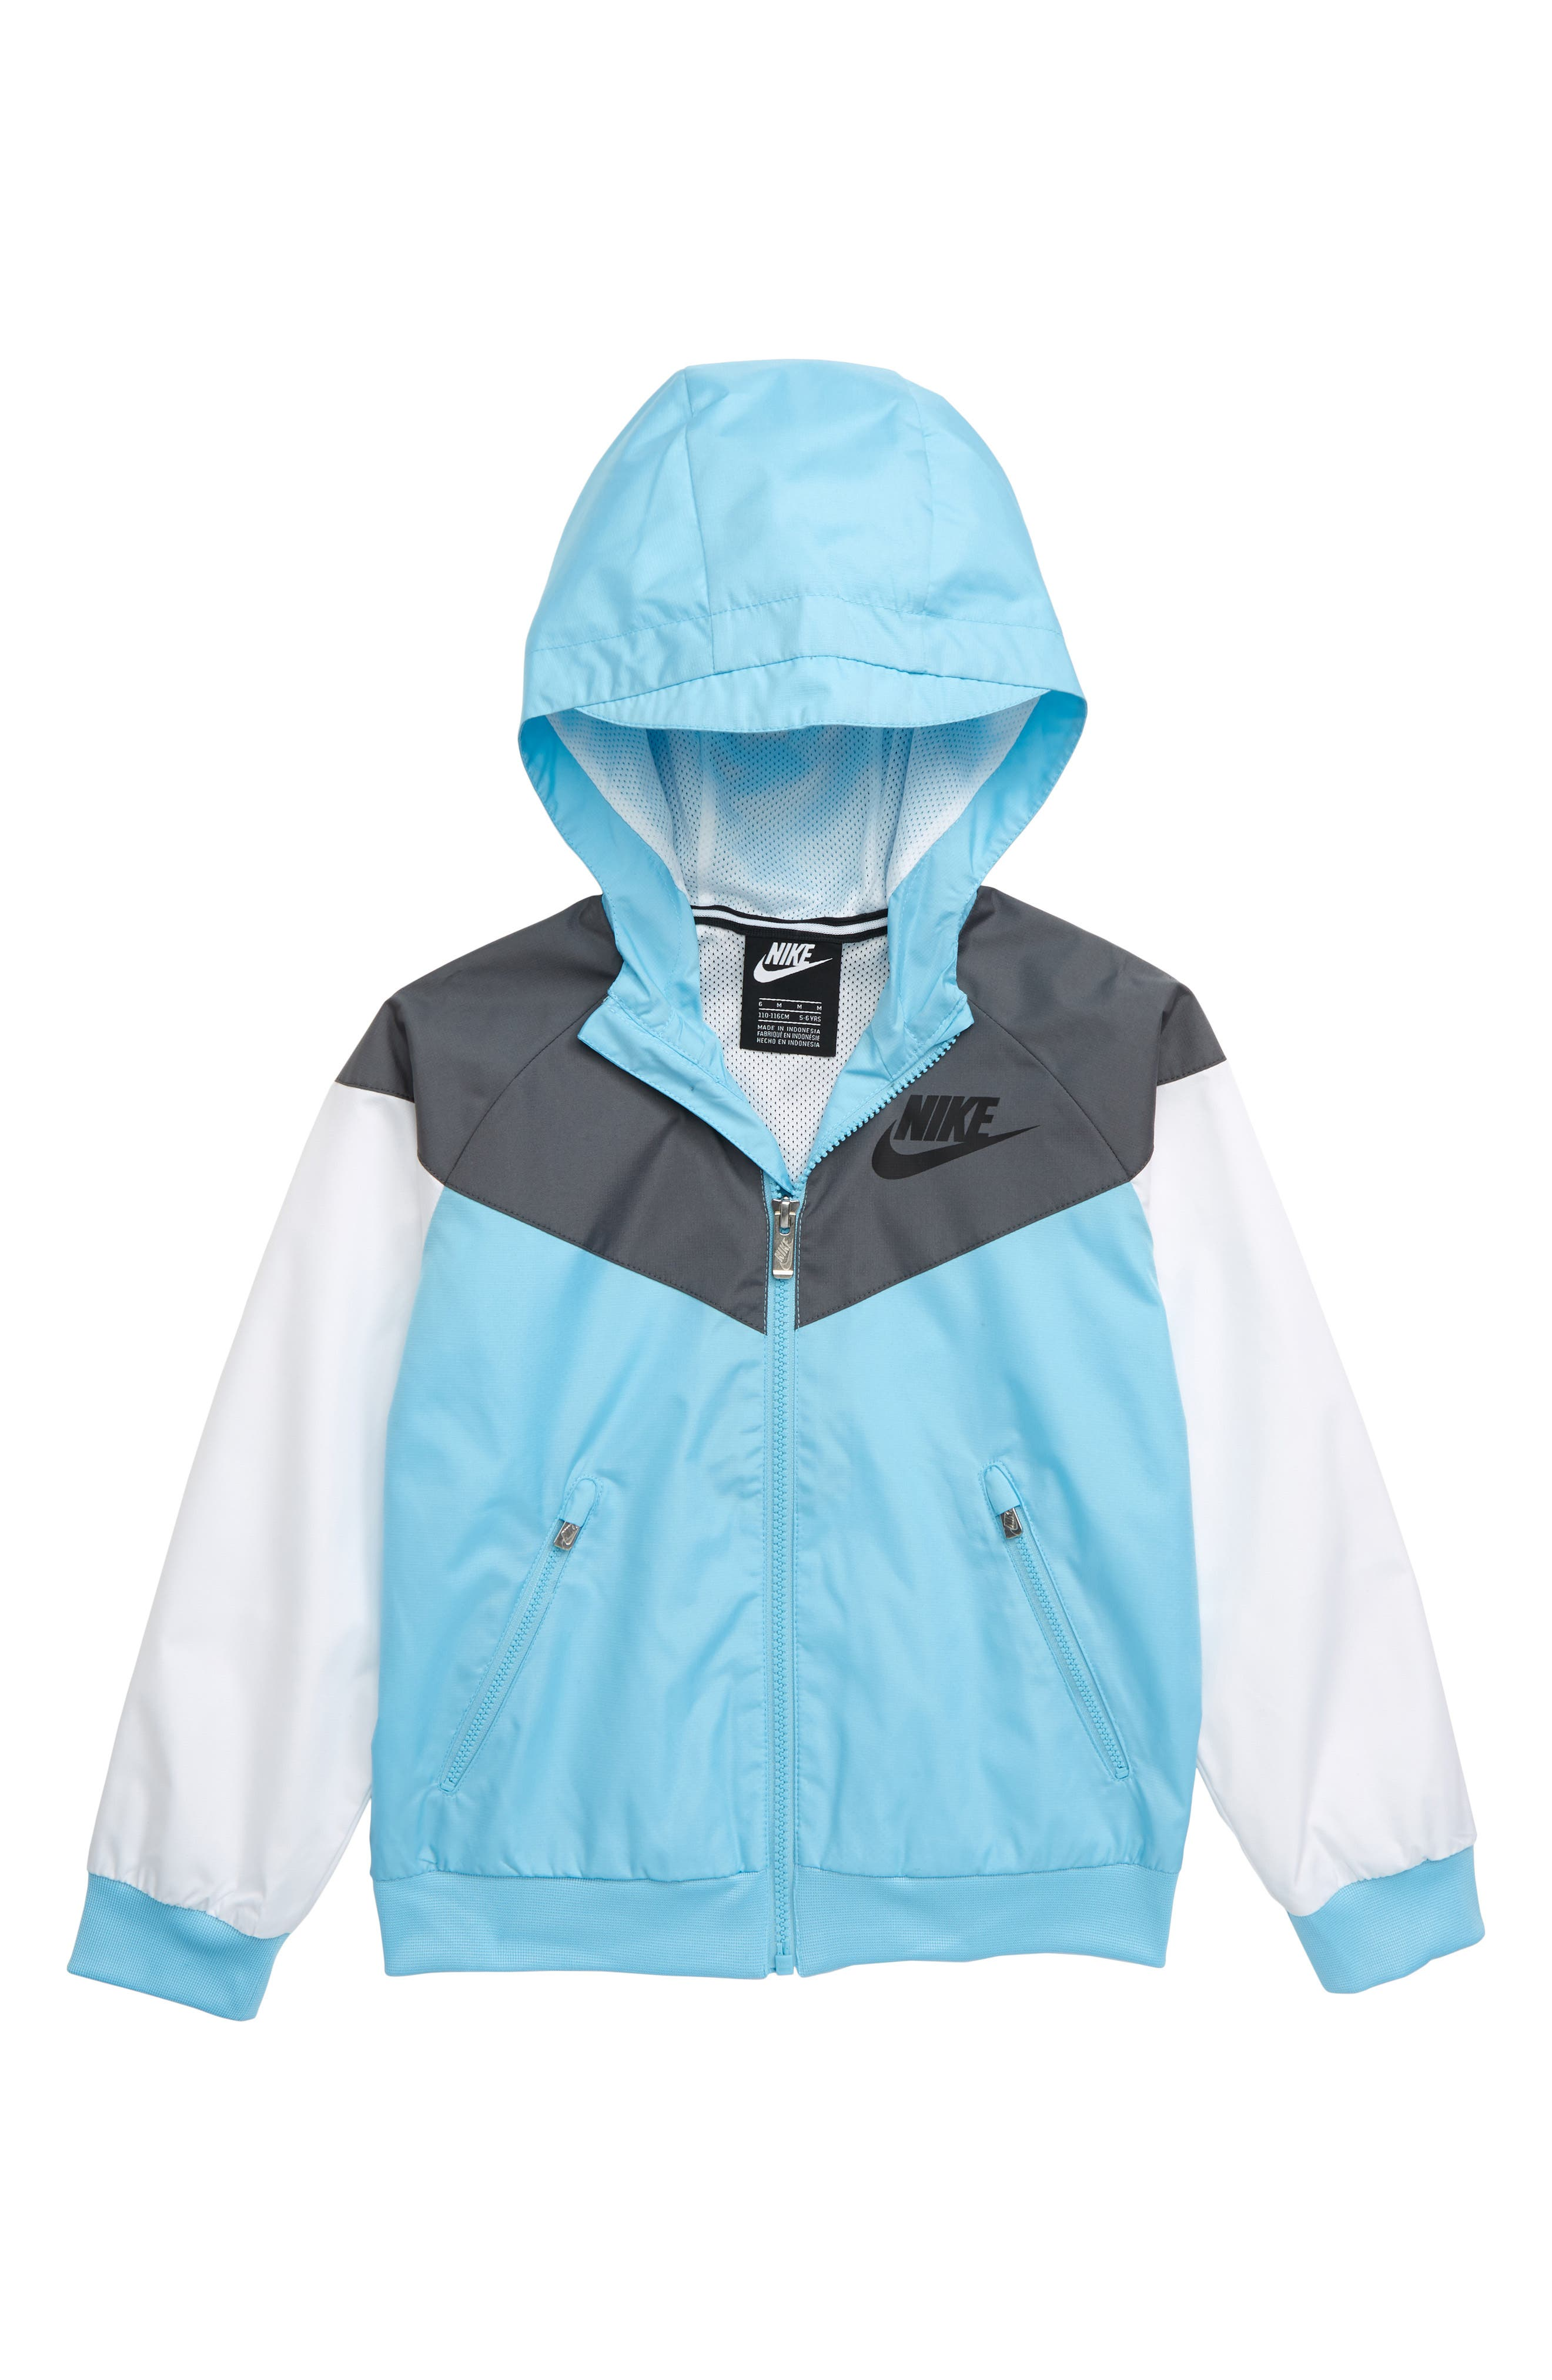 NIKE, Windrunner Water Resistant Hooded Jacket, Main thumbnail 1, color, BLUE GAZE